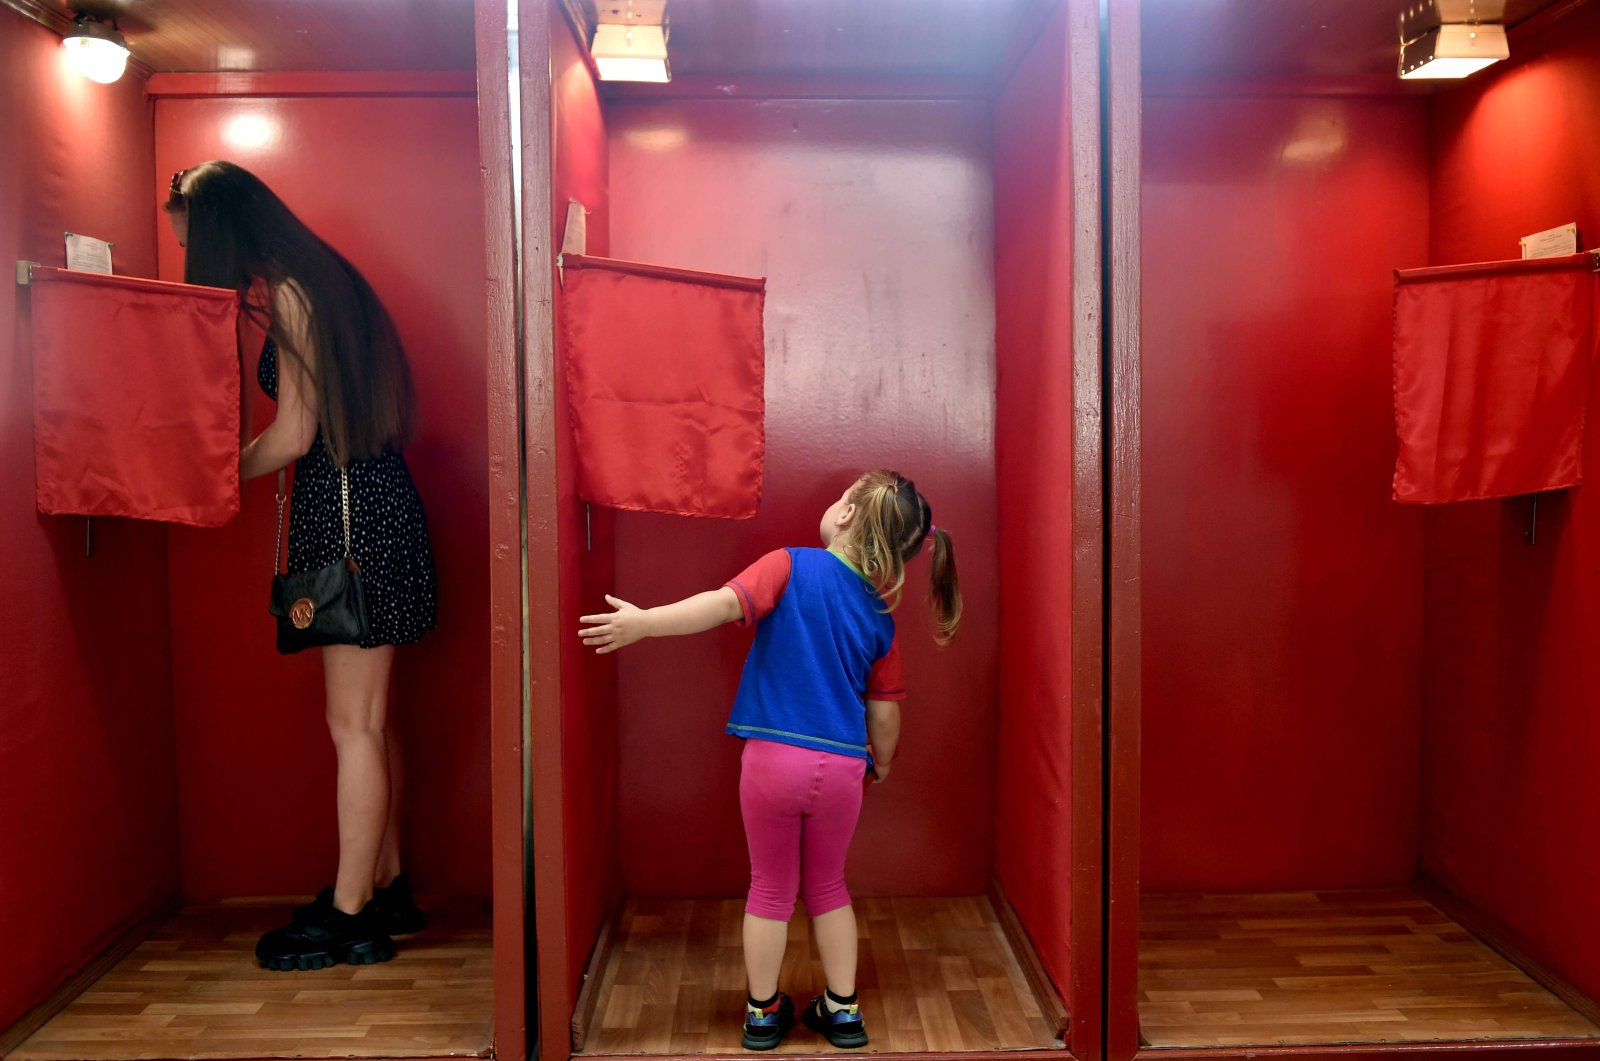 A girl looks into a voting booth at a polling station during the presidential election in Minsk, Belarus, Aug. 9, 2020. (AFP Photo)